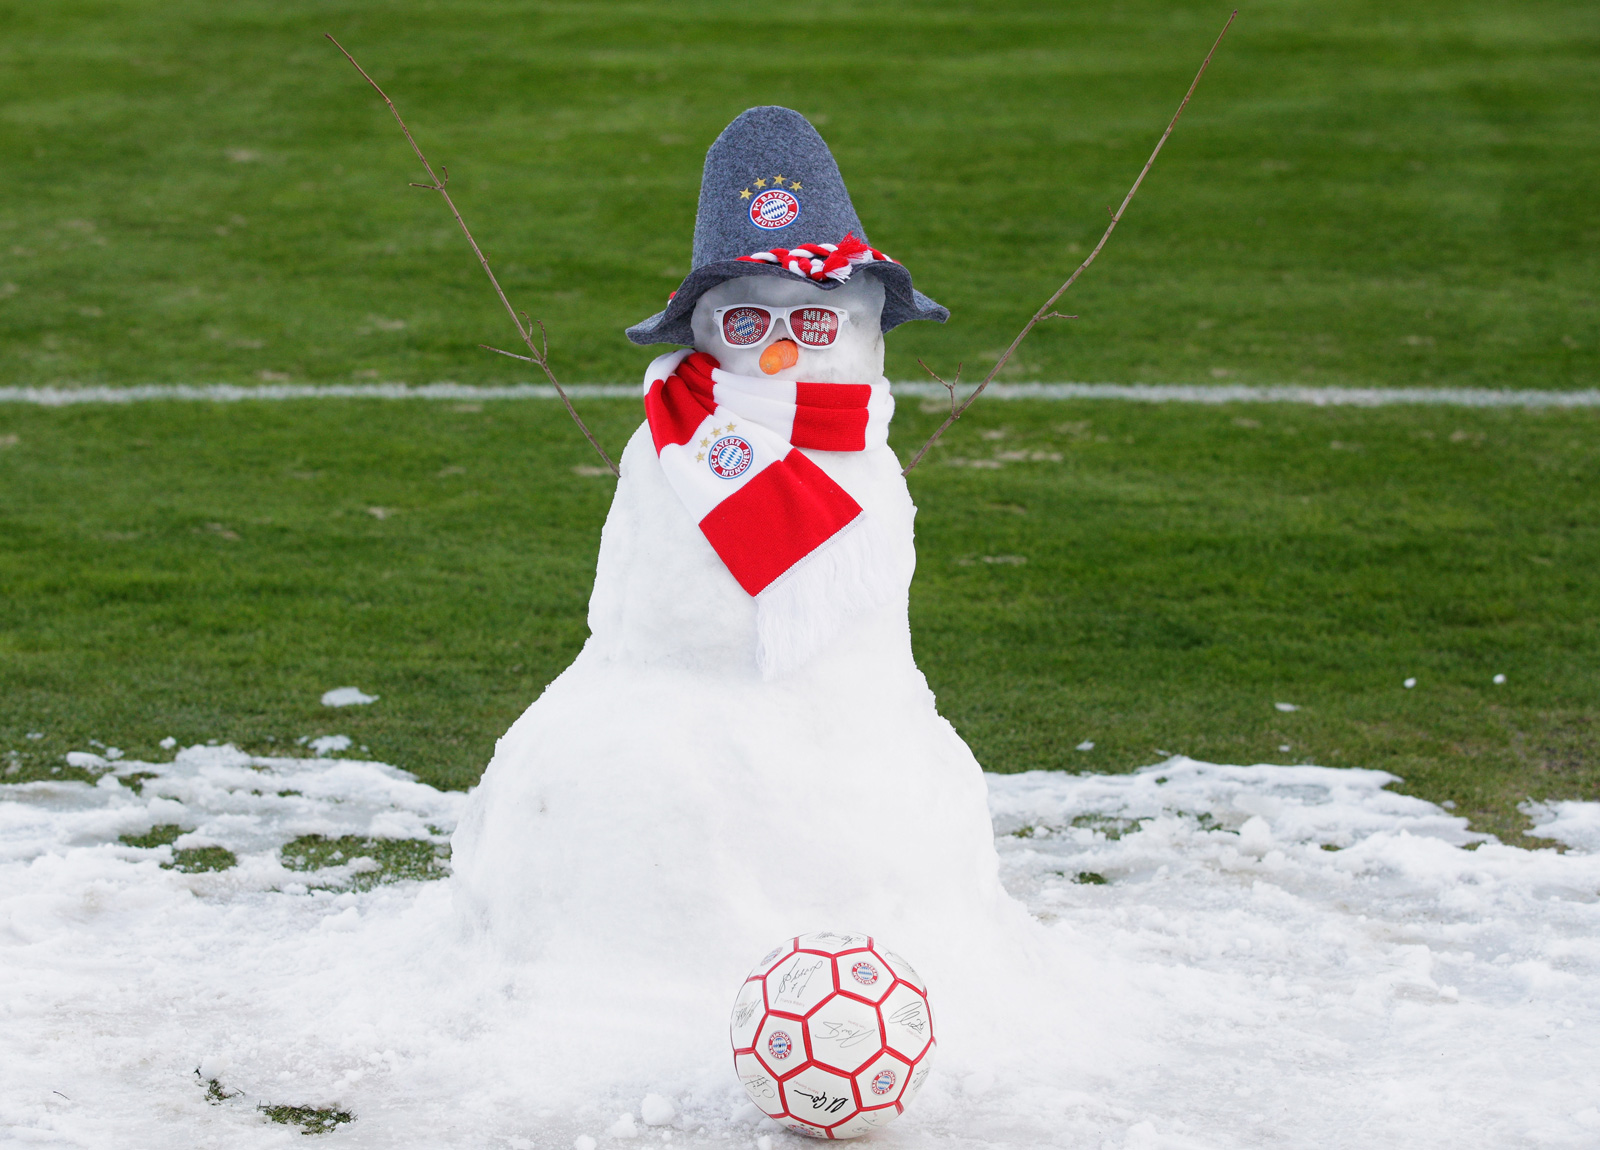 No question which team this snowman roots for, built at Bayern Munich training in January 2015.